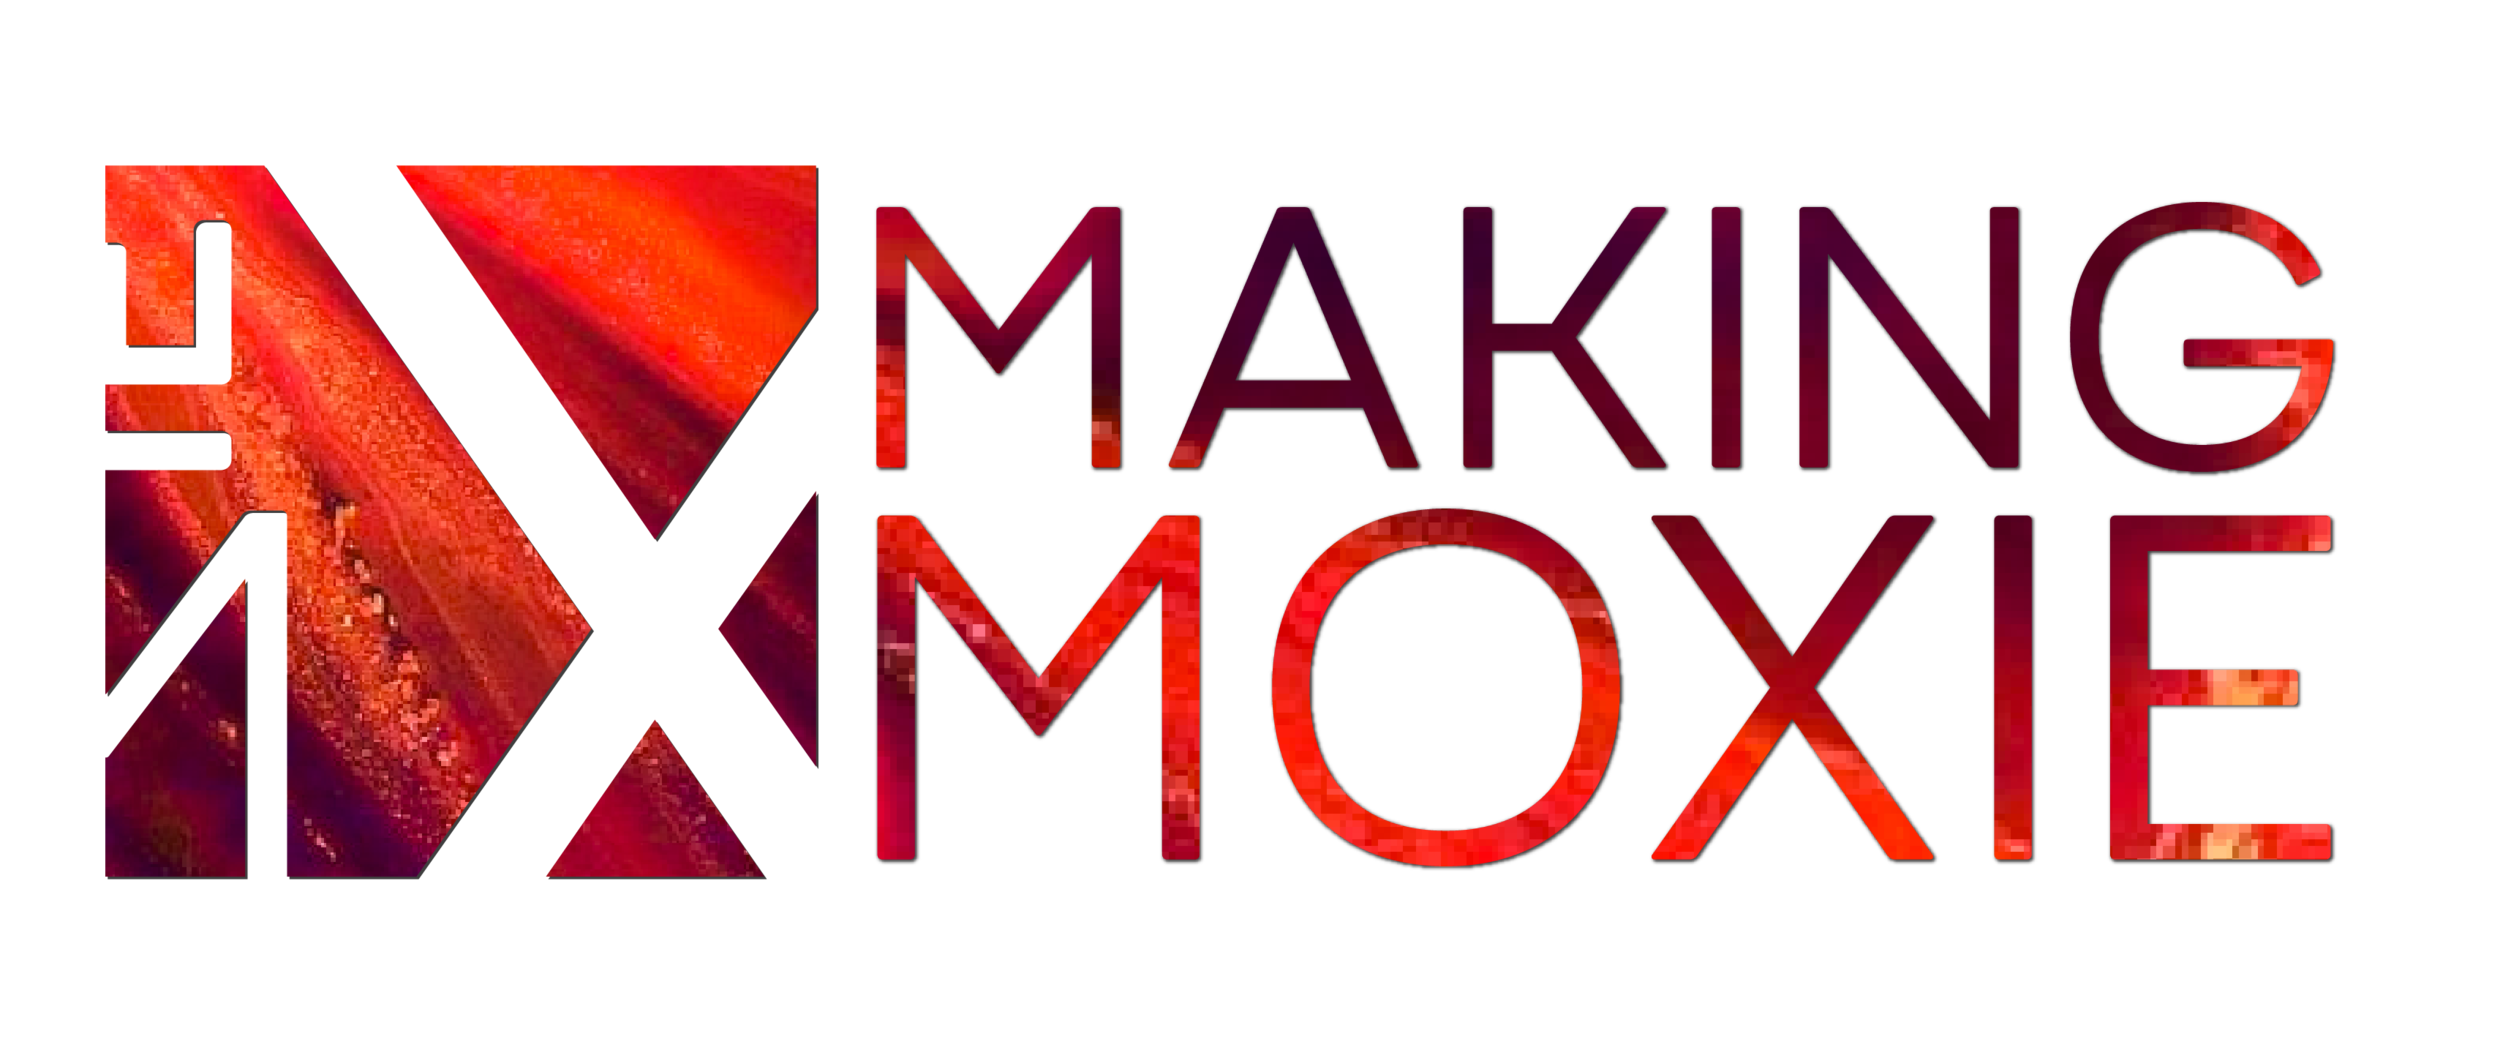 making moxie horizontal and logo.png